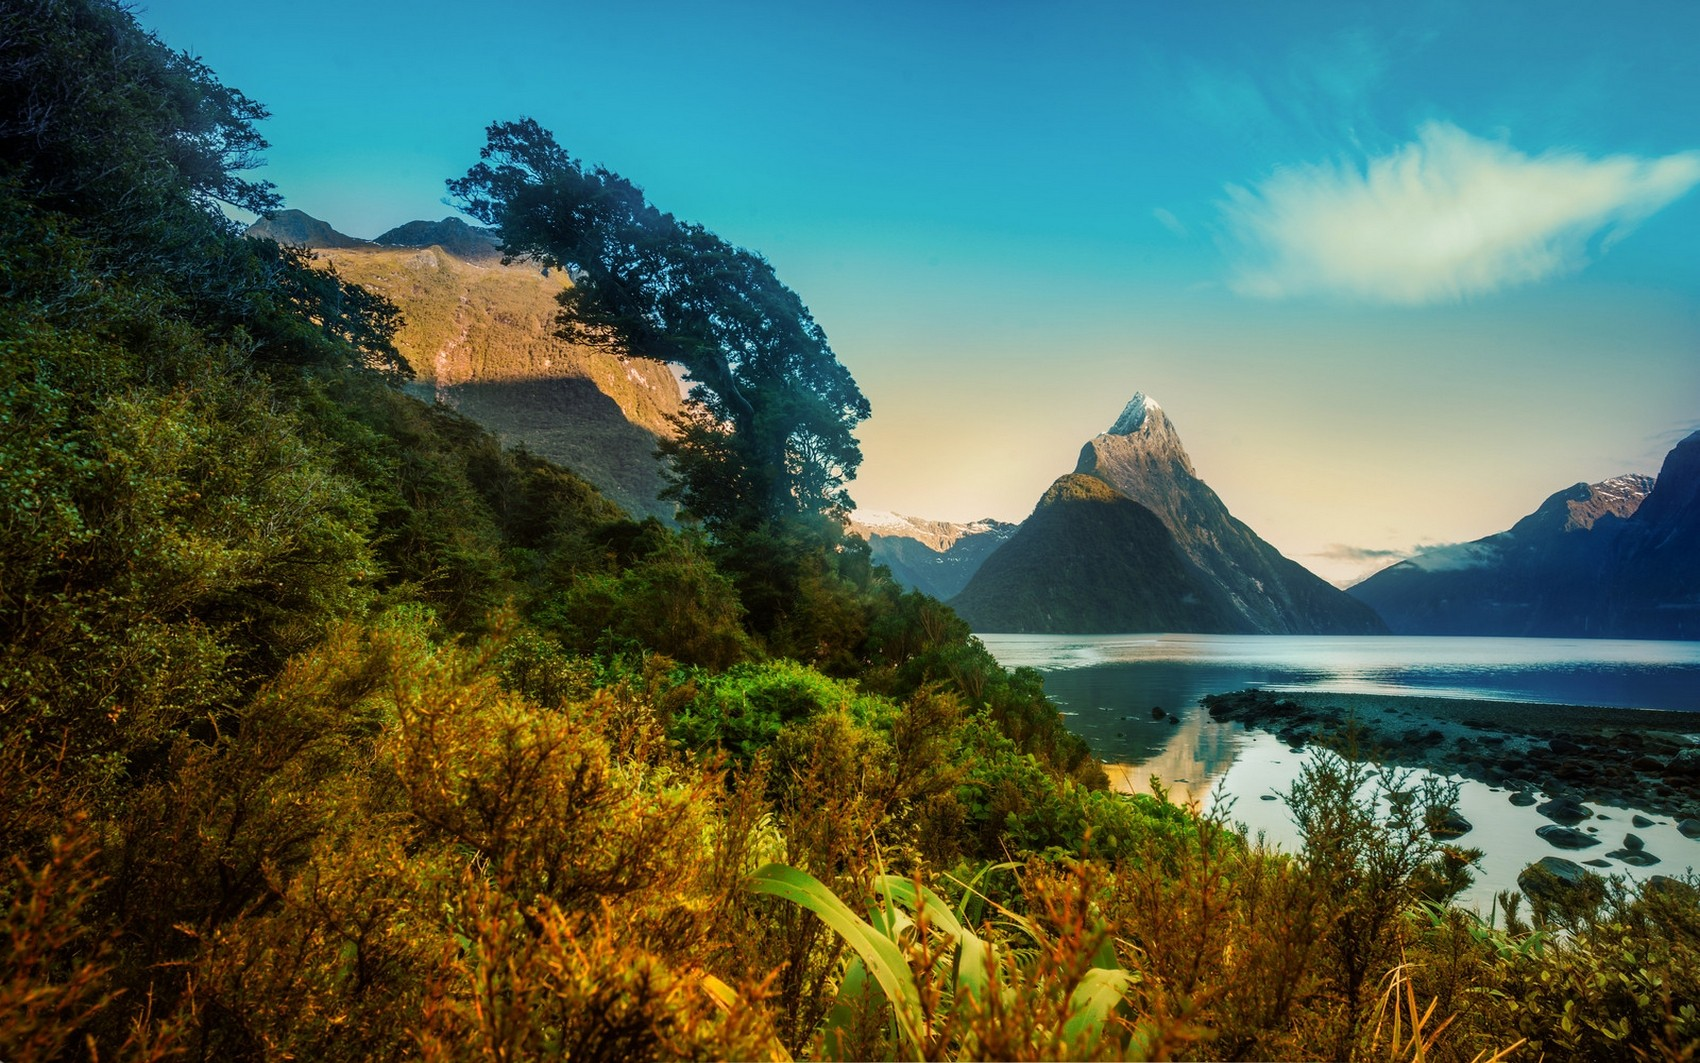 General 1700x1063 nature landscape morning mountains fjord snowy peak Milford Sound New Zealand trees shrubs